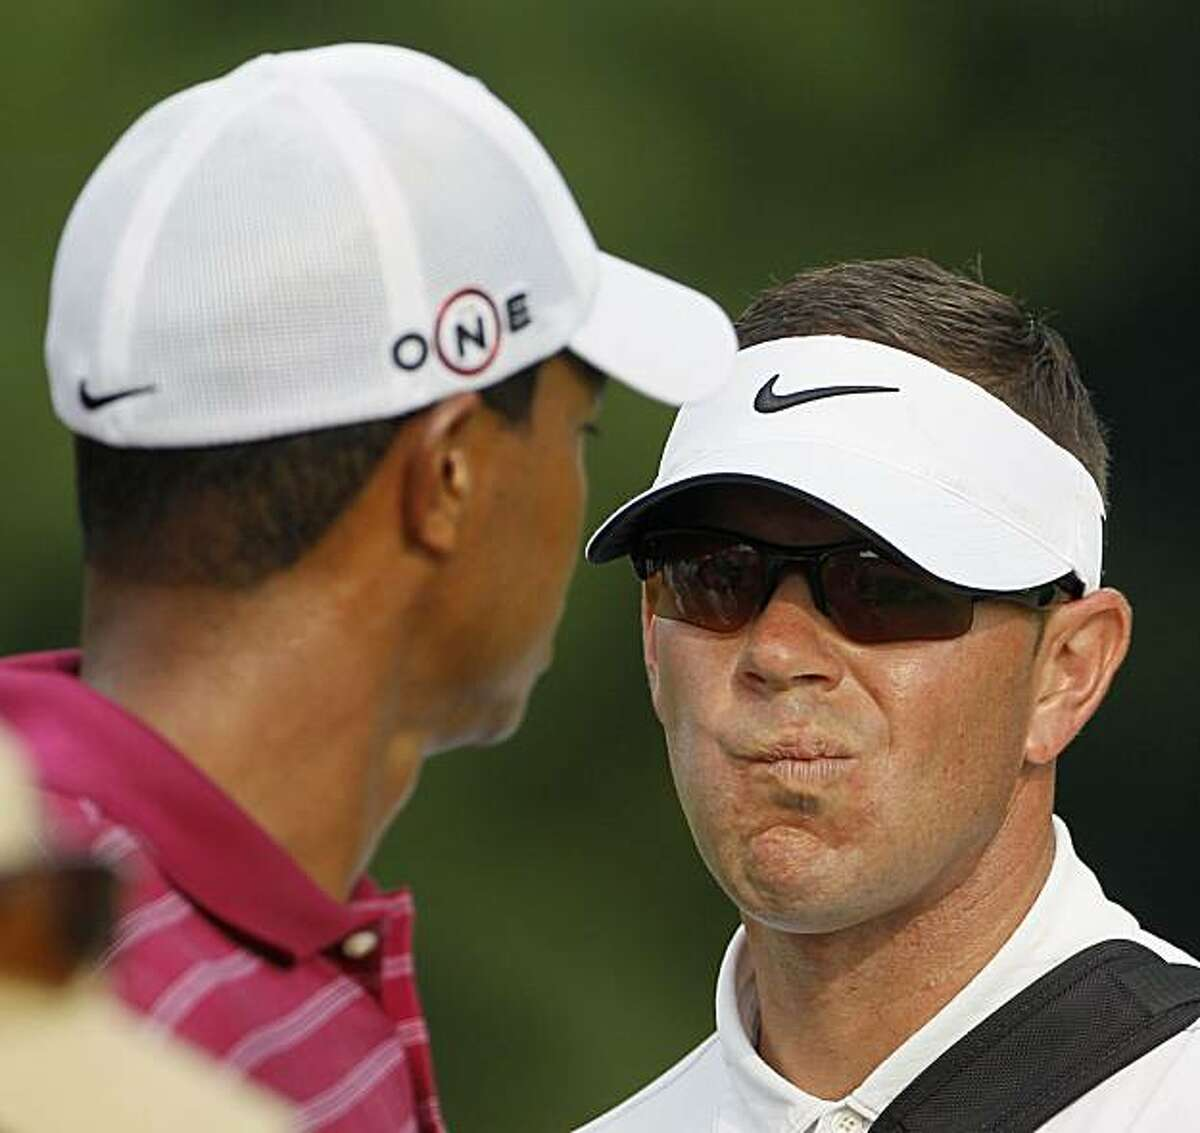 Coach Sean Foley, right, talks to Tiger Woods on the 10th tee during a practice round for the PGA Championship golf tournament Tuesday, Aug. 10, 2010, at Whistling Straits in Haven, Wis.